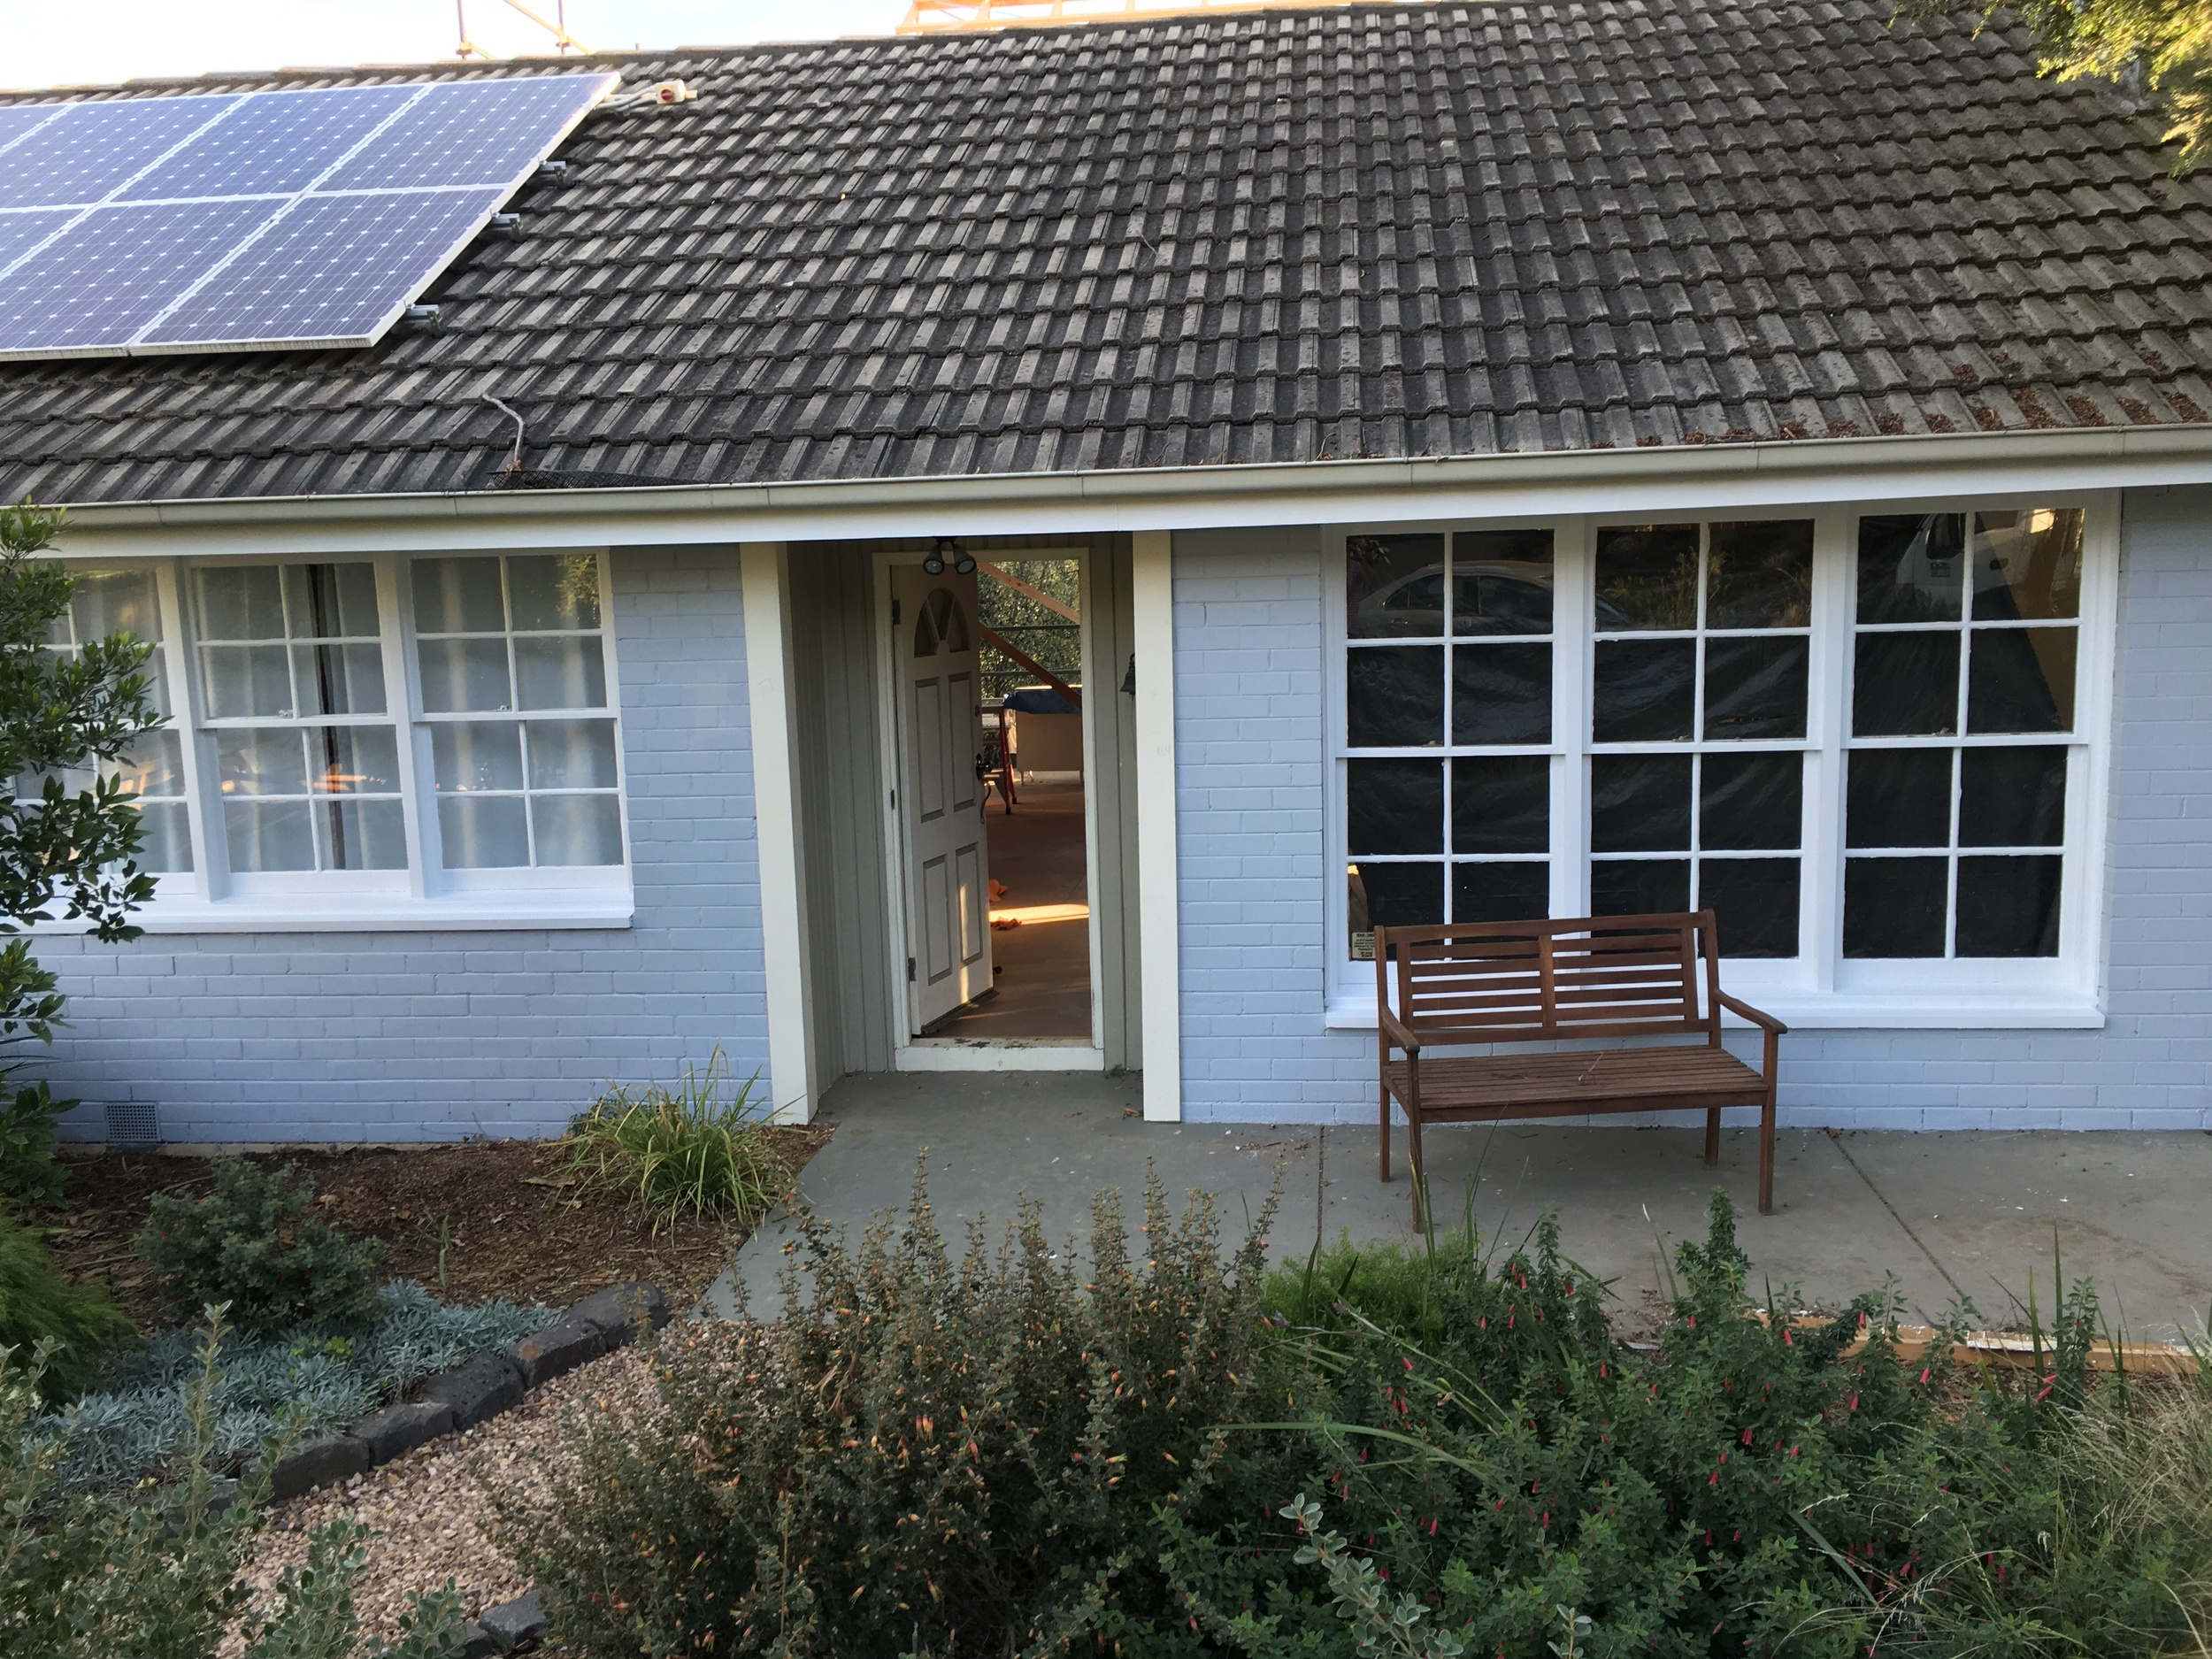 House exterior painted in grey